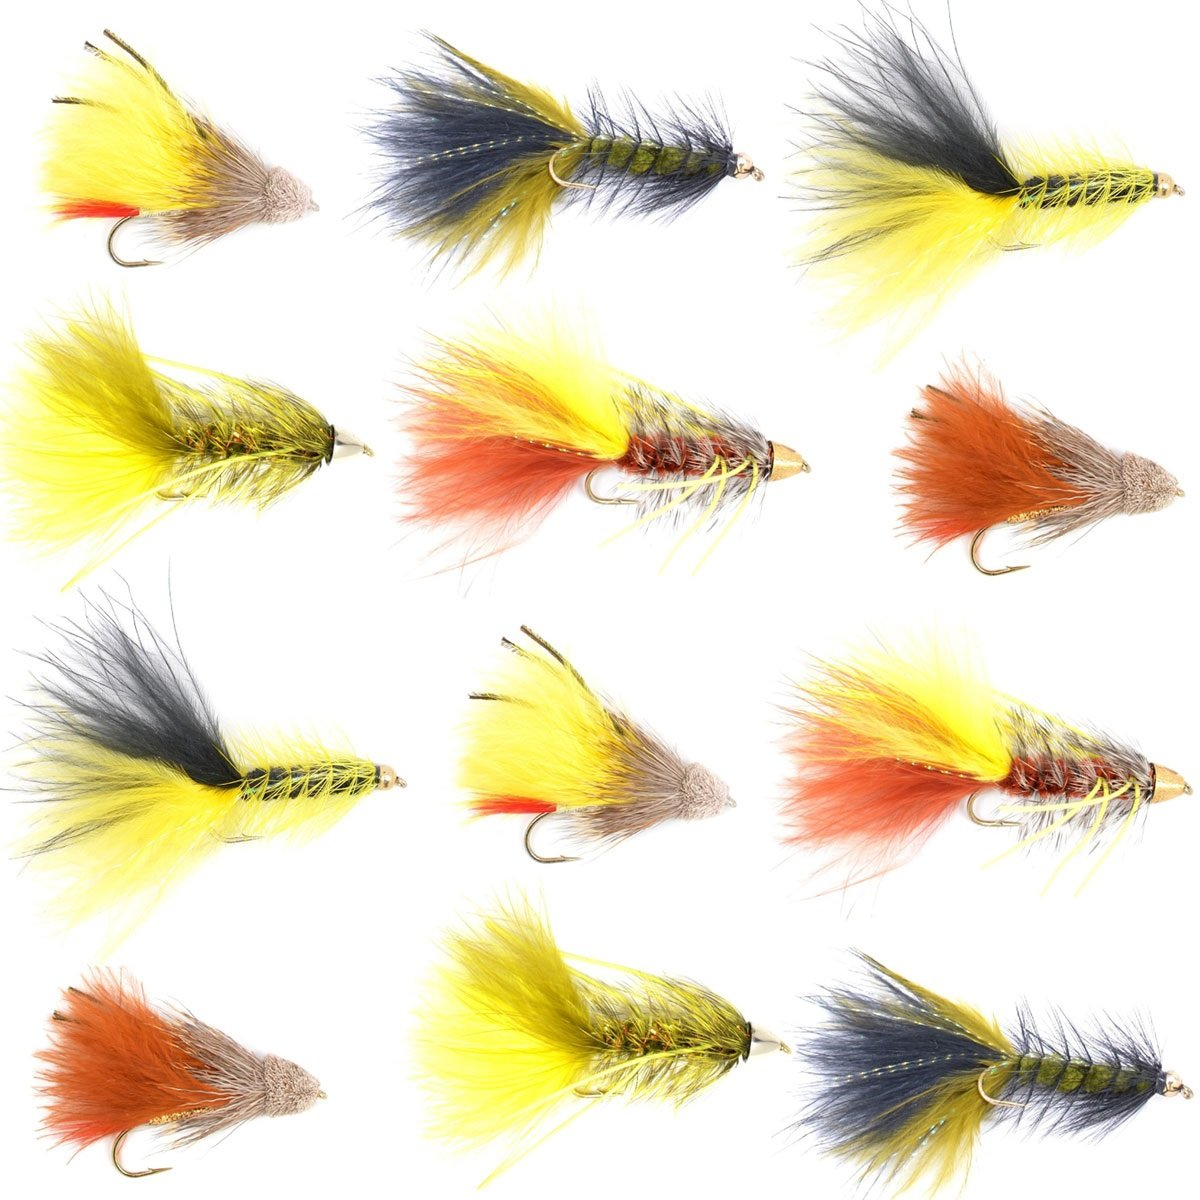 The Fly Fishing Place Trout and Bass Streamer Fly Assortment - Rubber Legged Buggers and Marabou Muddler Minnow Streamer Flies Collection - 1 Dozen Fly Fishing Flies - Size 4